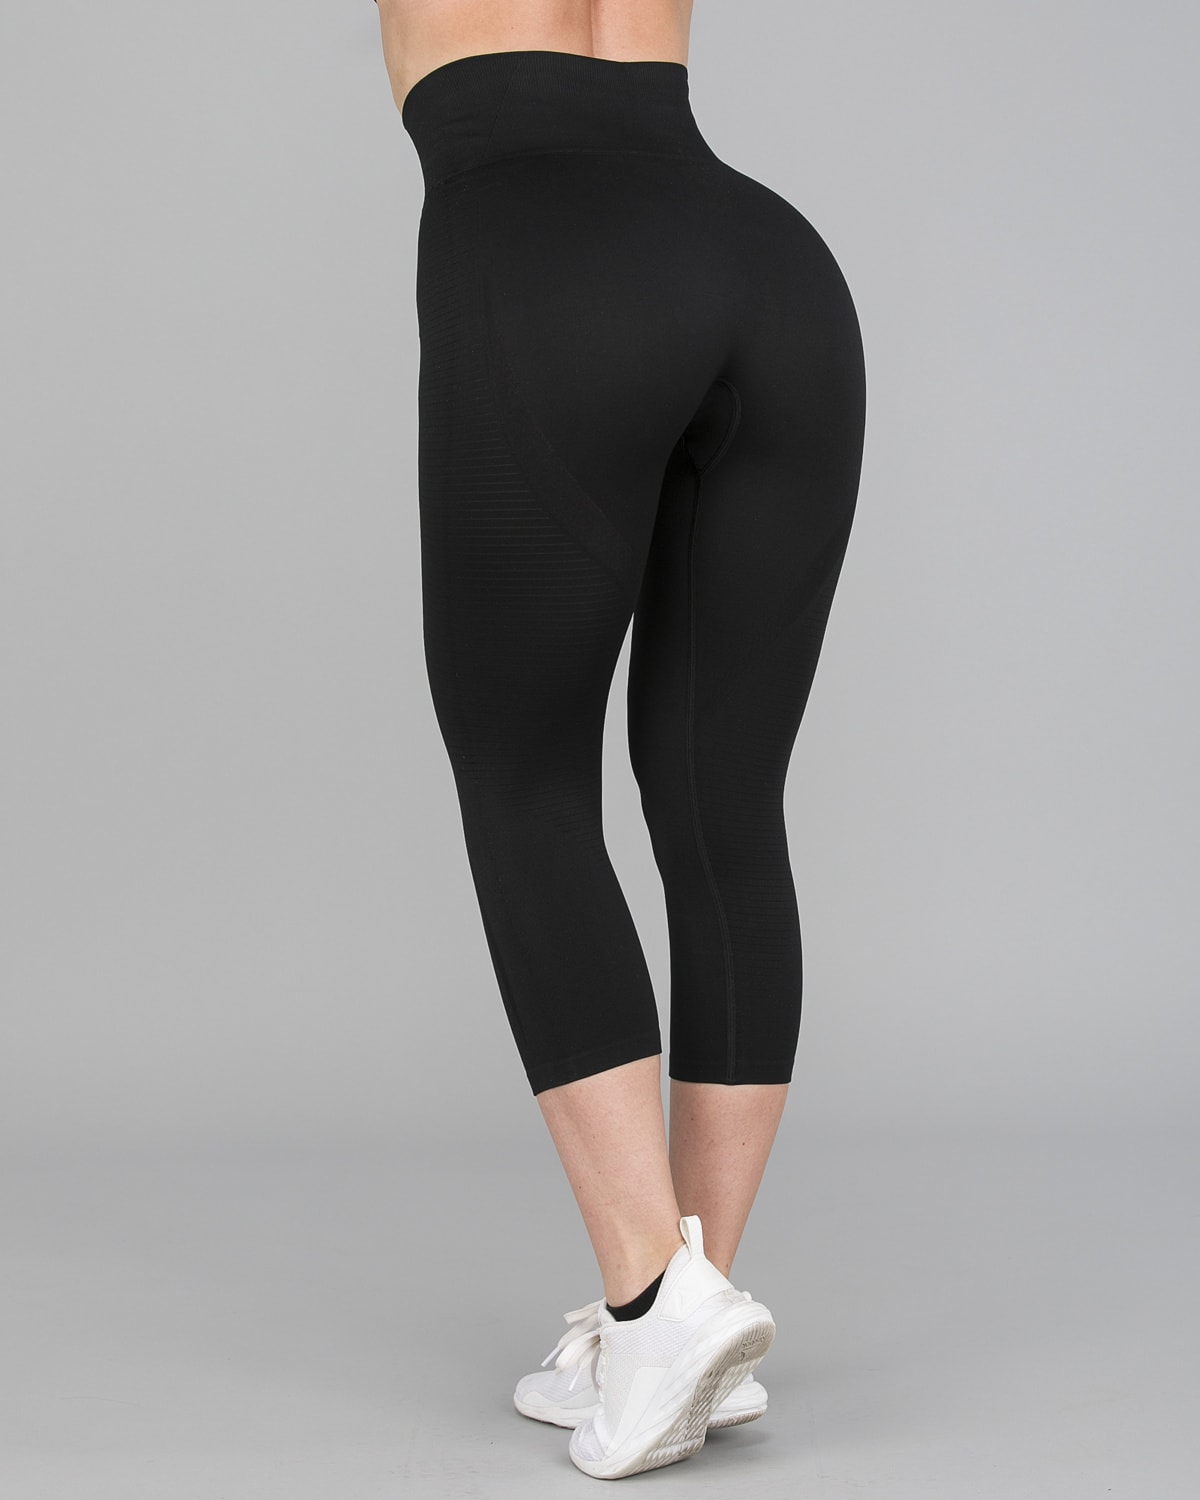 FAMME – Vortex Leggings 7:8 – Black8